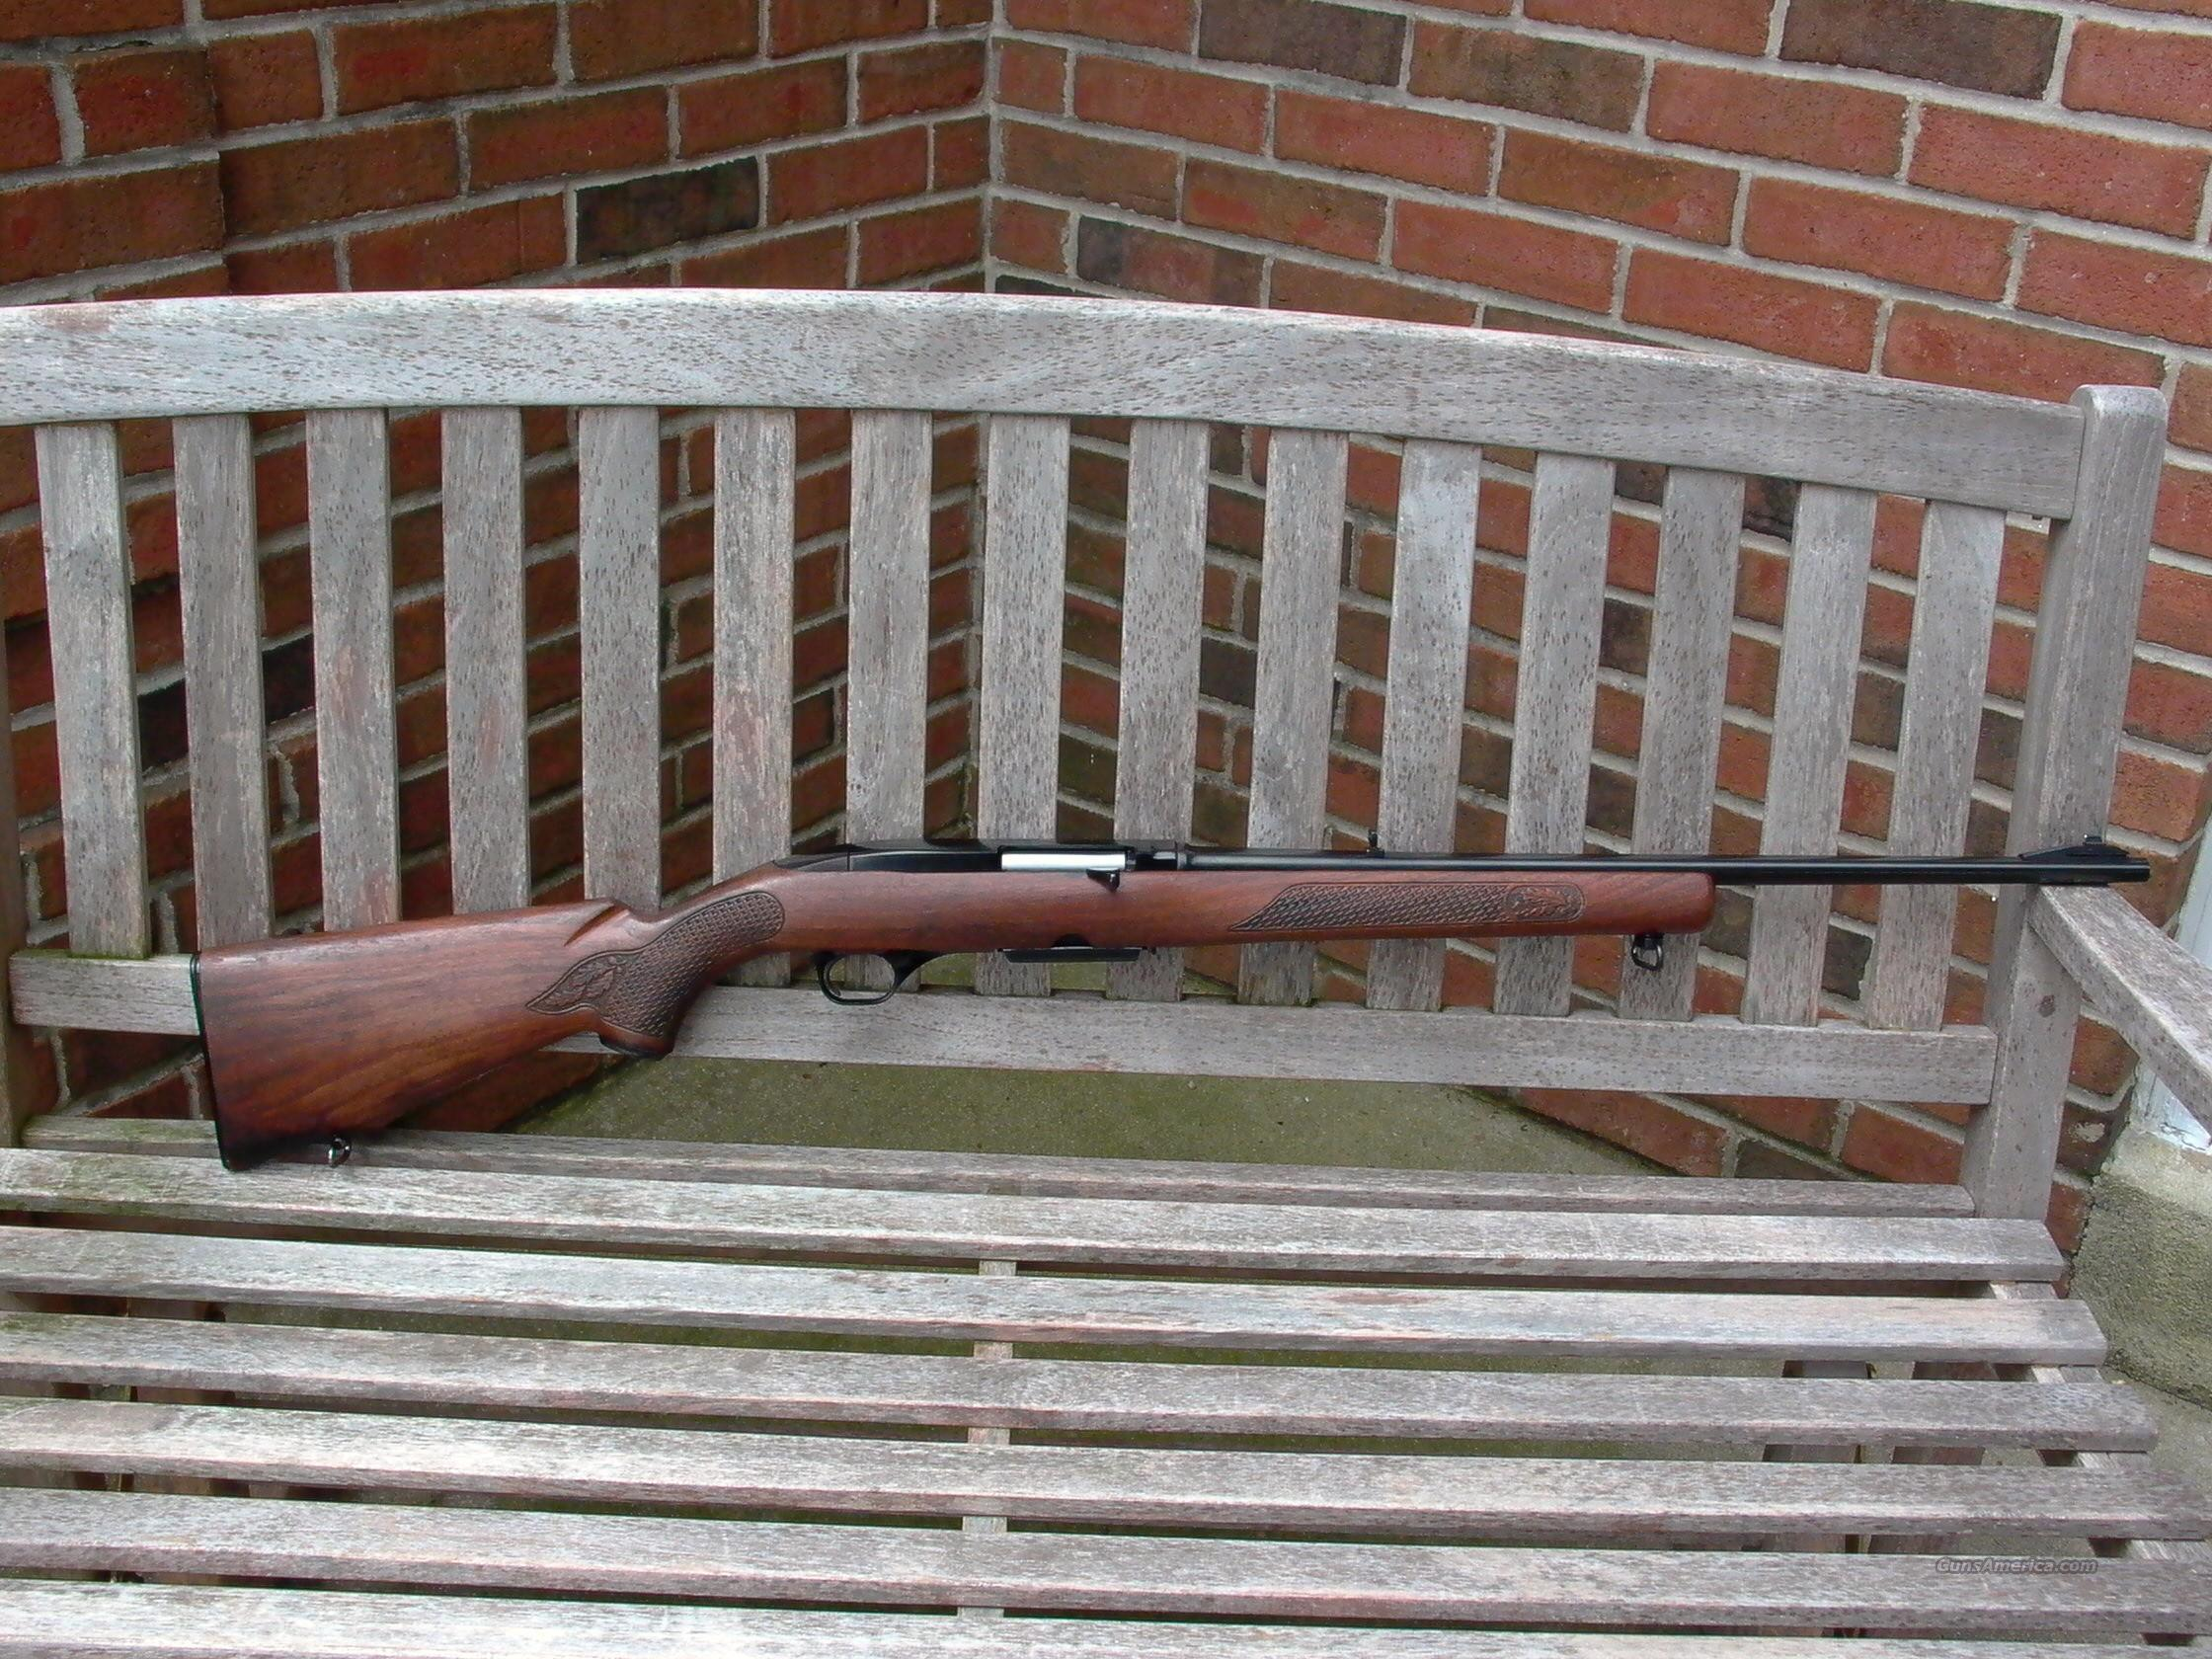 MODEL 100 .308 CALIBER  Guns > Rifles > Winchester Rifles - Modern Bolt/Auto/Single > Autoloaders